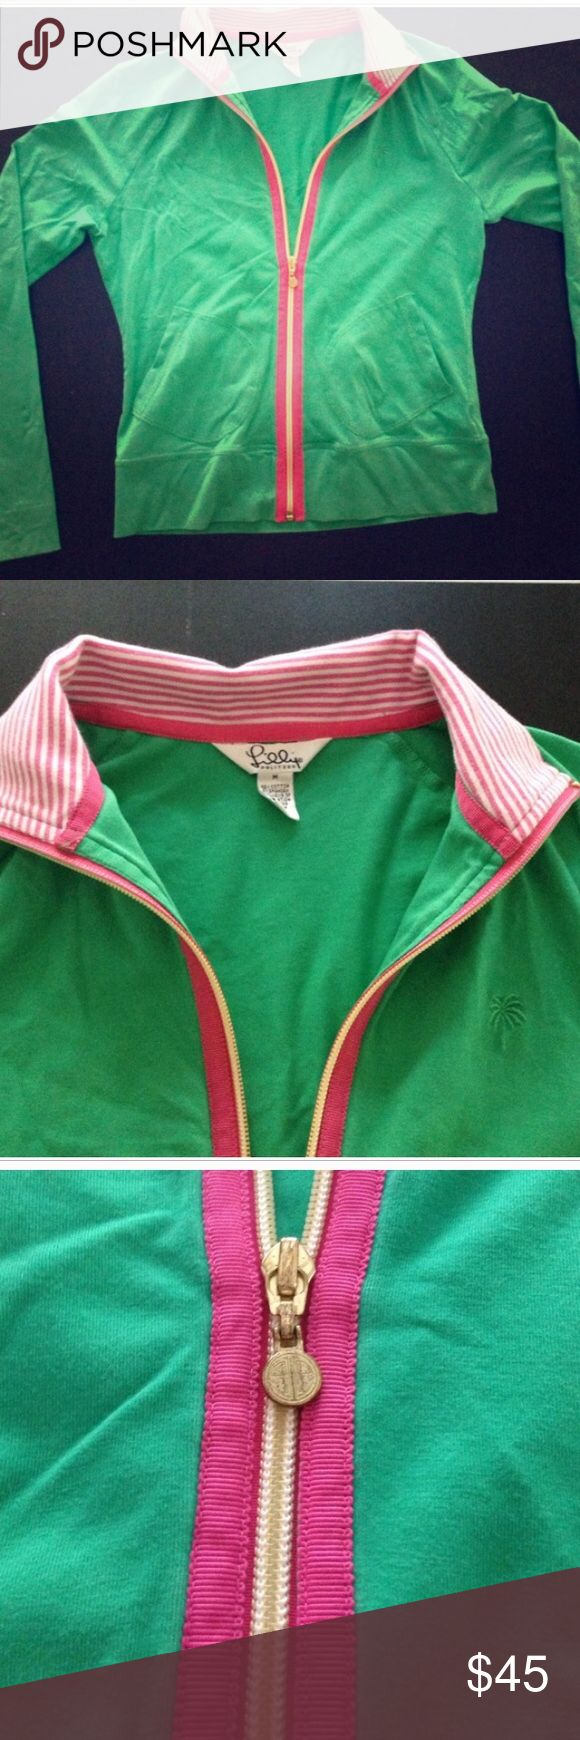 Lilly Pulitzer pink and green zip up sweatshirt Athletic wear zip up cardigan preppy Lilly pink and green! Yoga? Better than Lululemon. Lilly Pulitzer Tops Sweatshirts & Hoodies